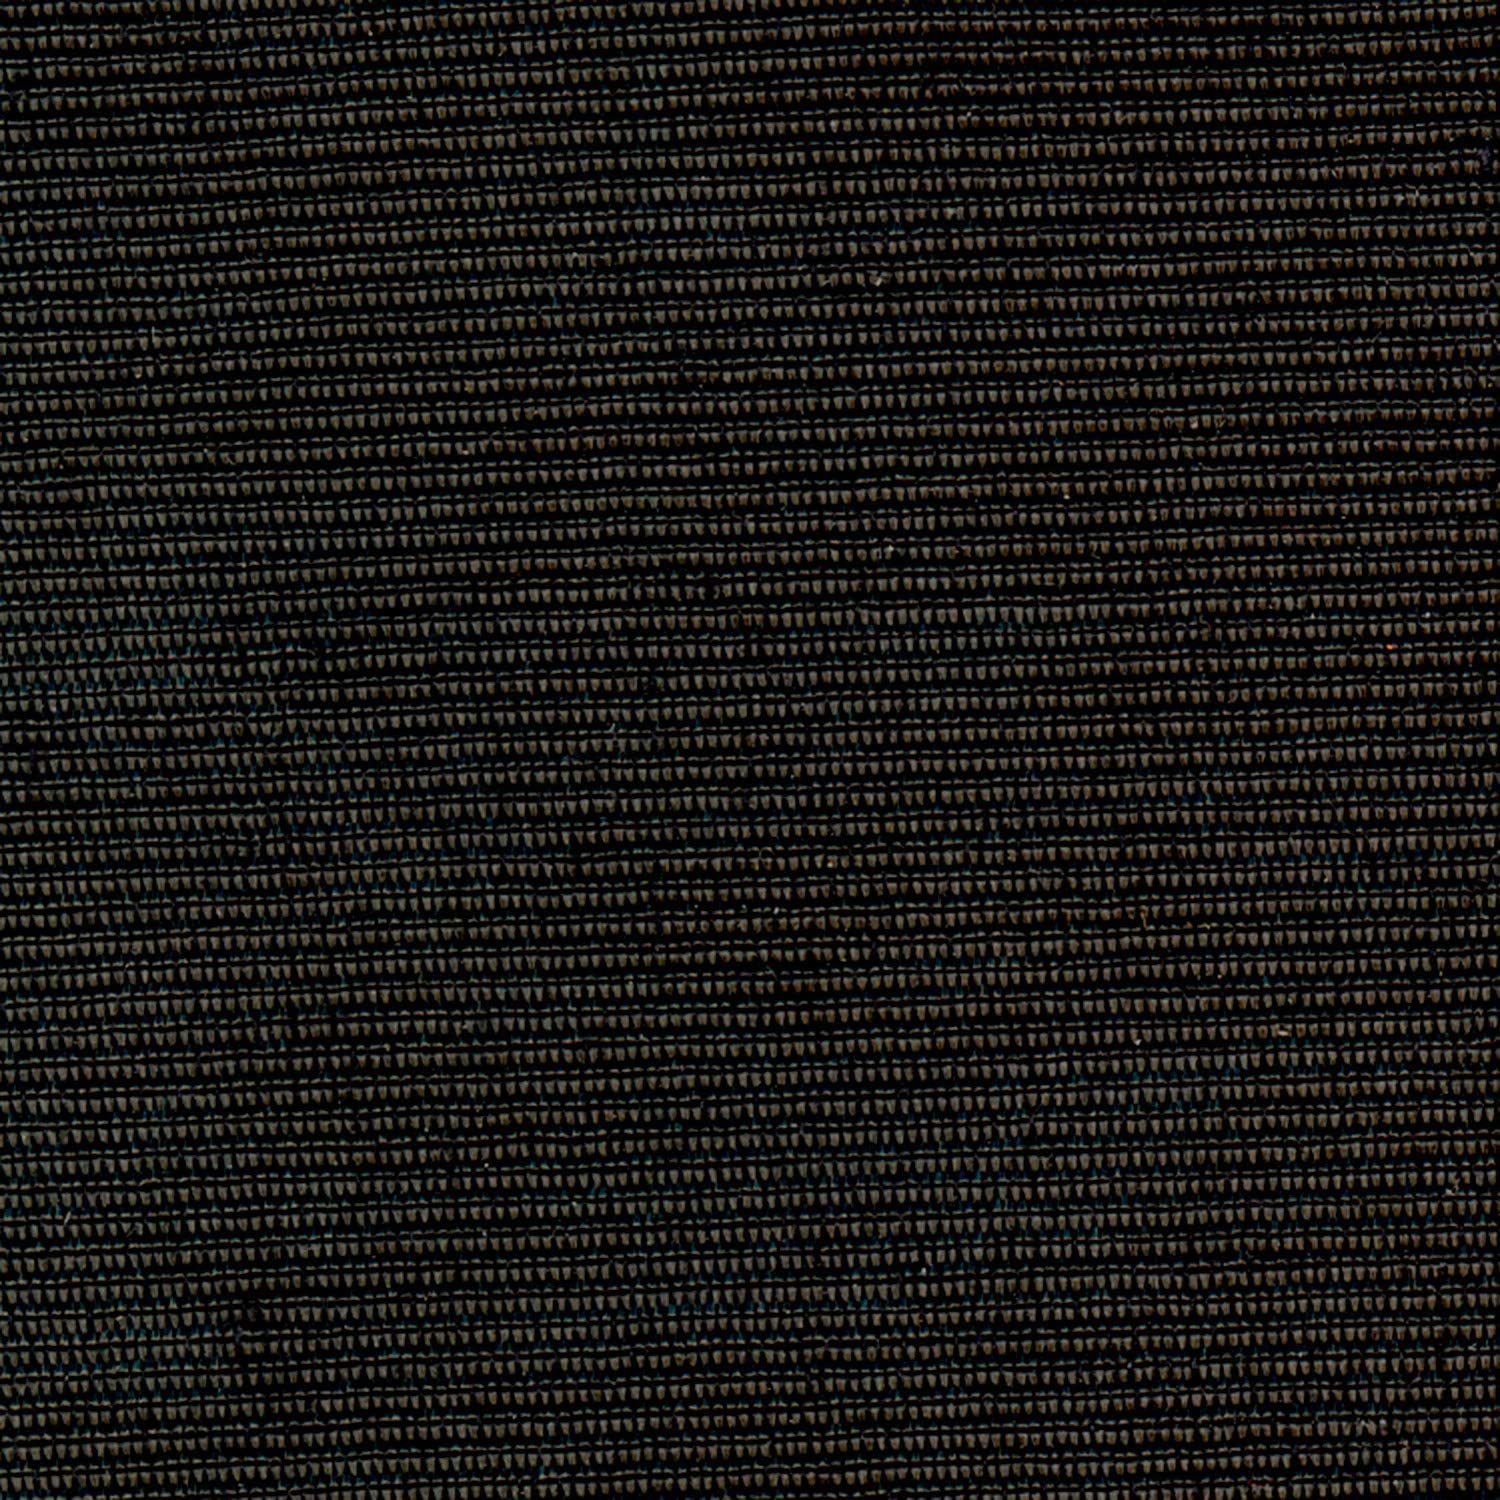 Lineco Ribbed Satin BookCloth 17 x 19 Inches Archival Quality Close-Weave Acid-Free Durable Flexible Black